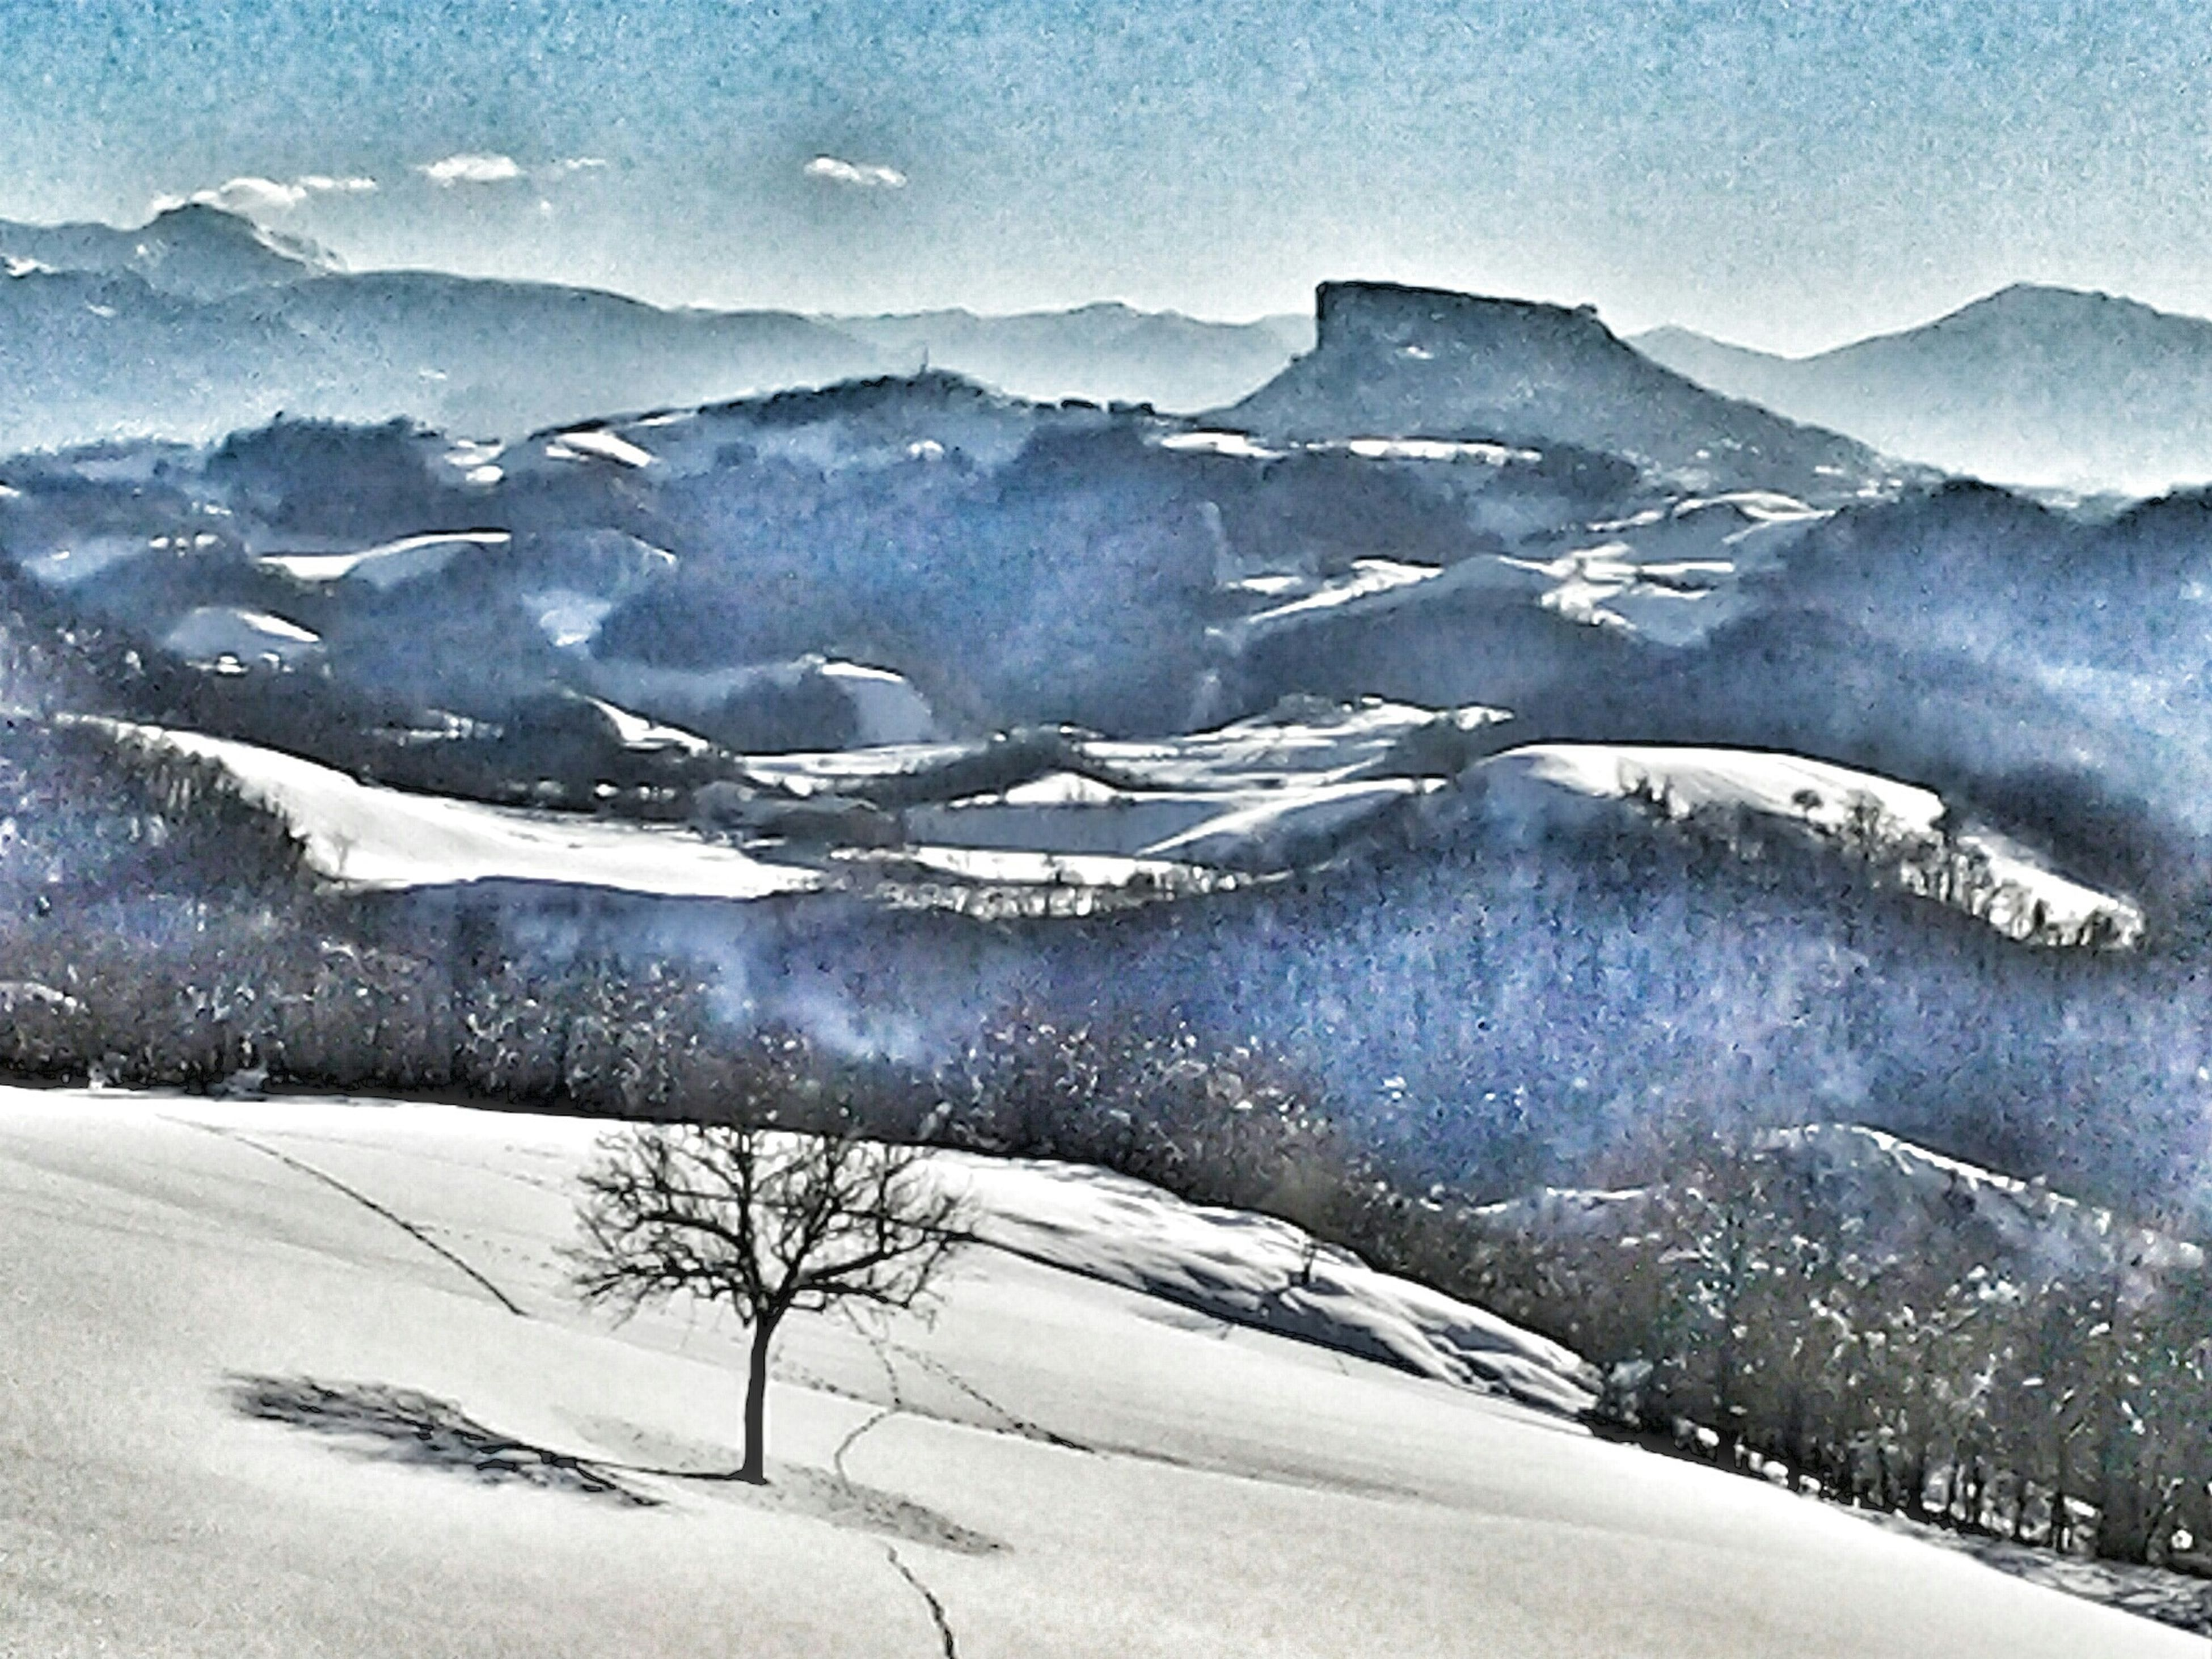 snow, winter, cold temperature, season, weather, covering, snowcapped mountain, landscape, mountain, tranquil scene, frozen, tranquility, scenics, beauty in nature, nature, snow covered, white color, snowcapped, mountain range, covered